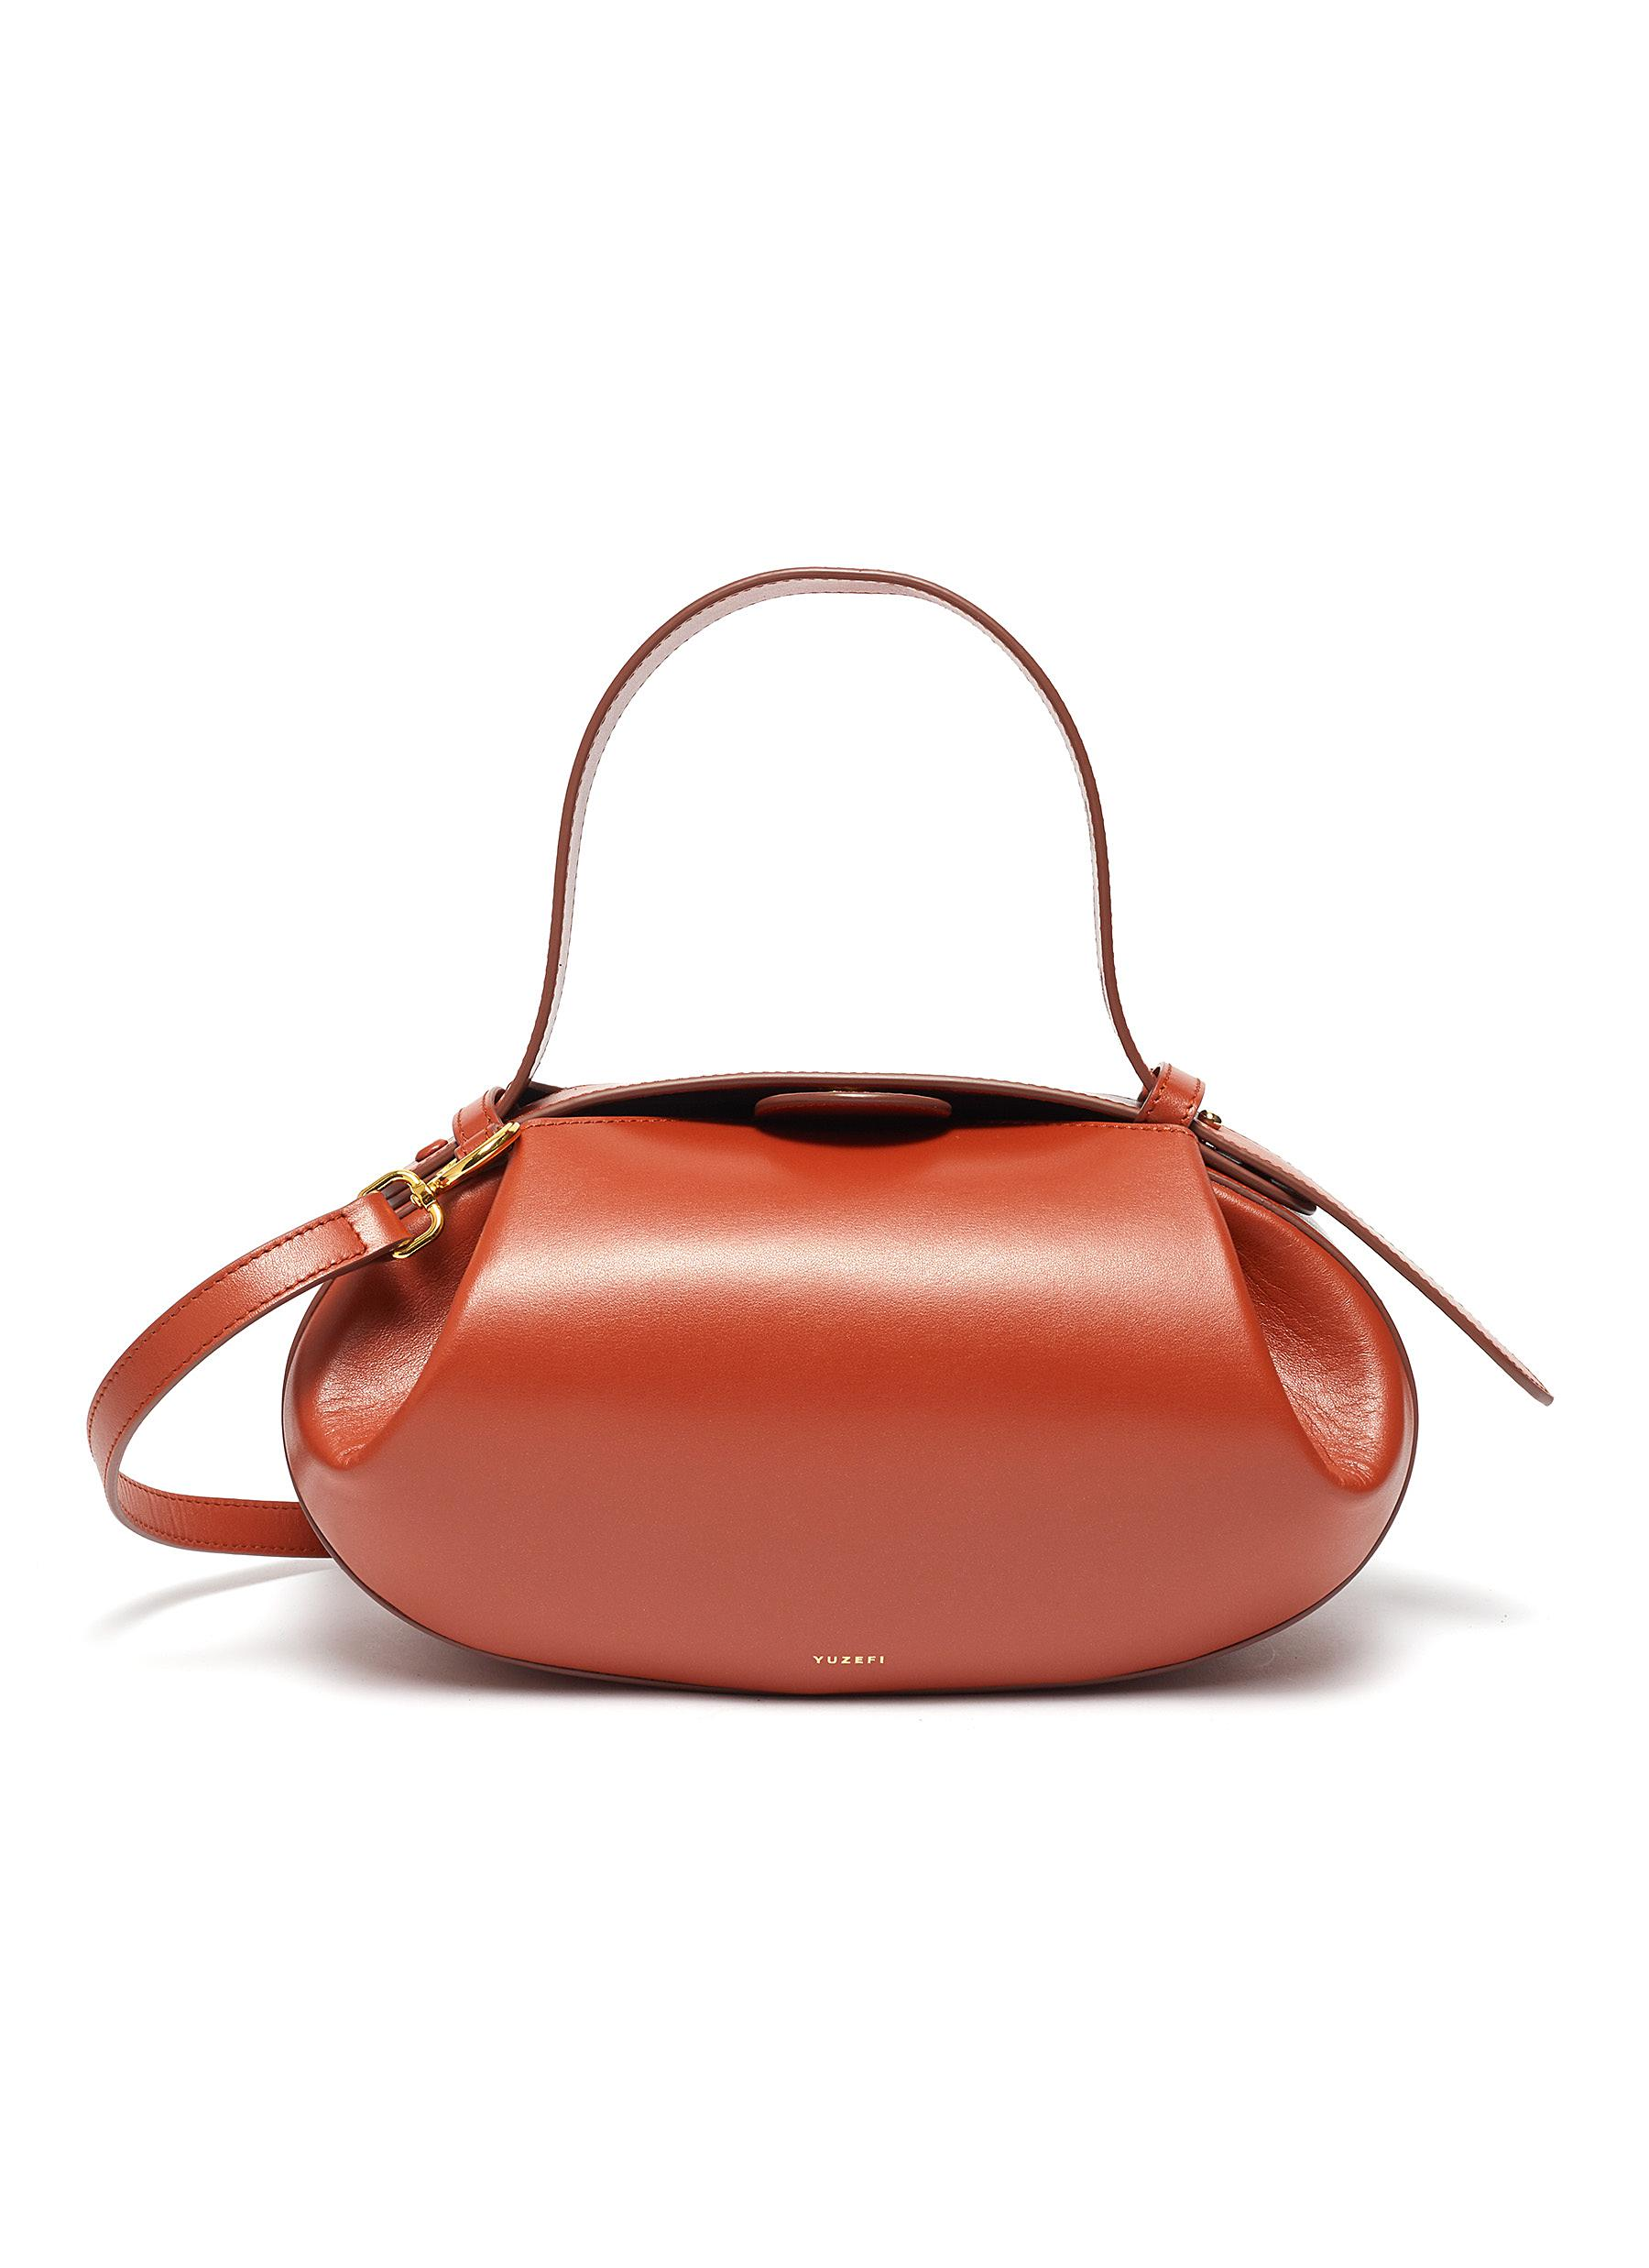 YUZEFI | 'Loaf' oval top handle leather bowling bag | Women